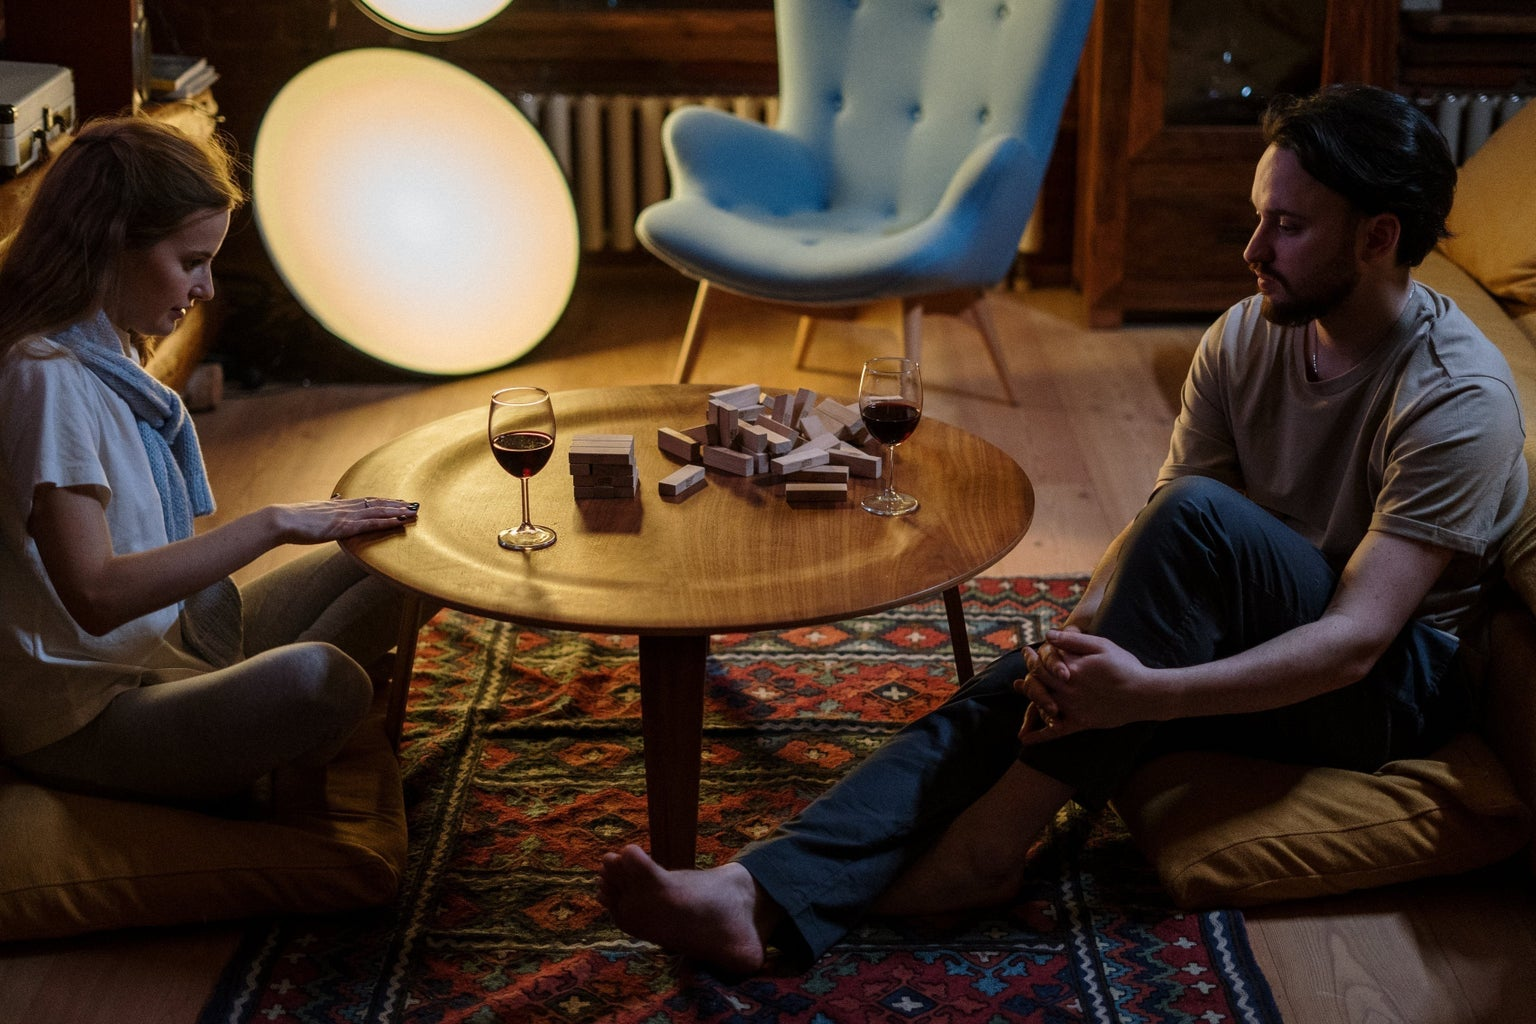 man and woman playing jenga on wooden floor table with wine